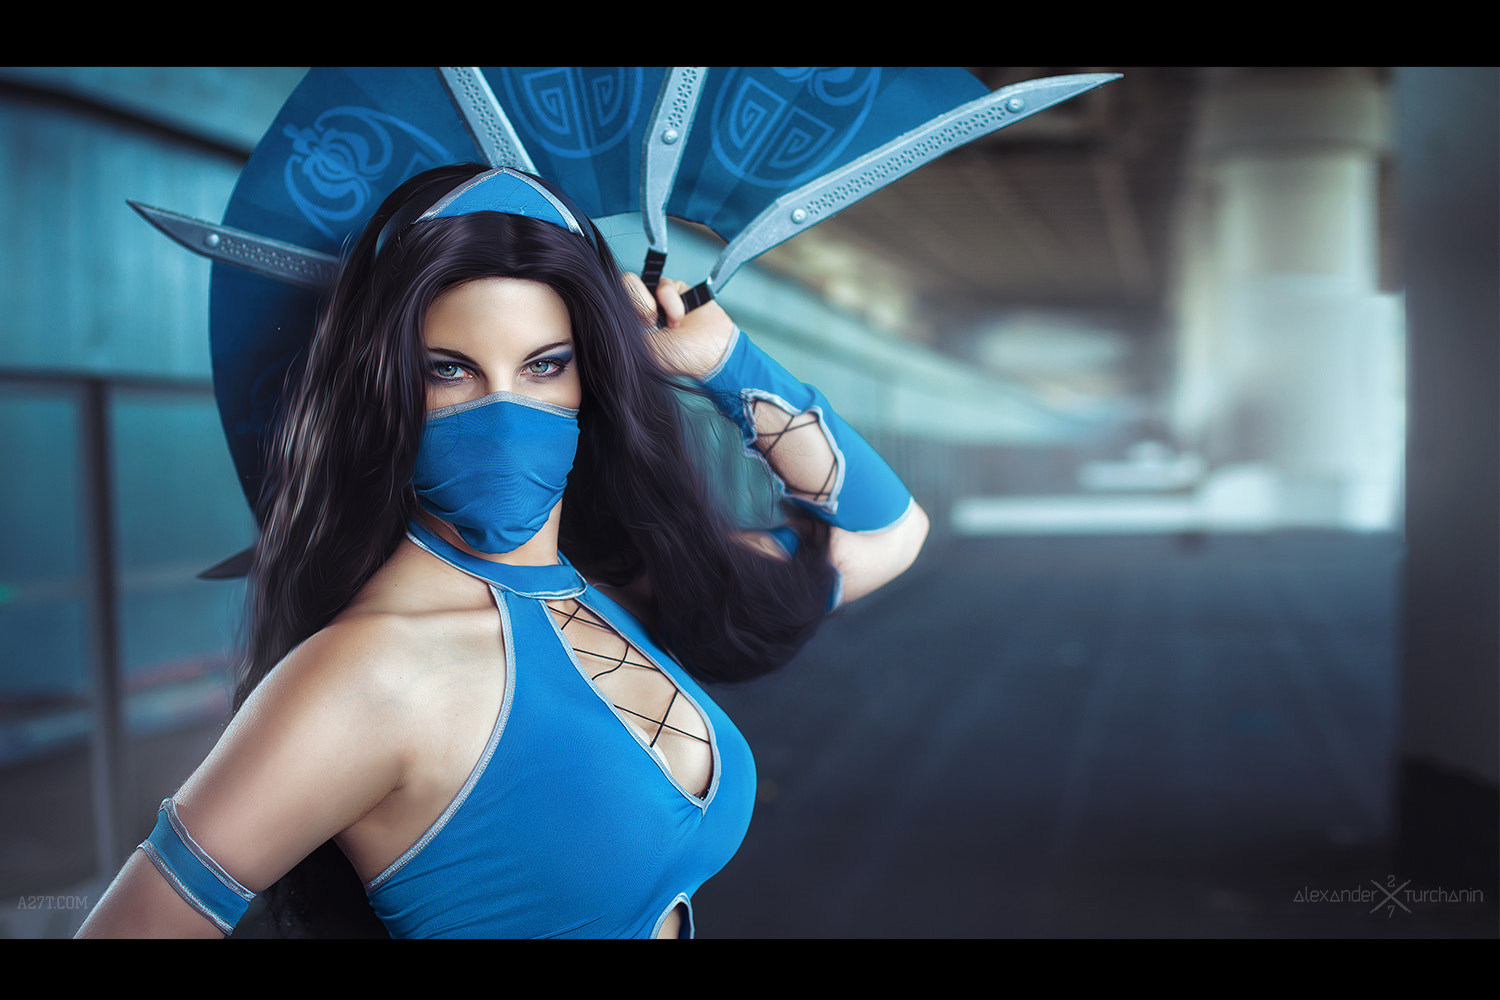 Photograph Mortal Kombat: Kitana by Alexander Turchanin on 500px